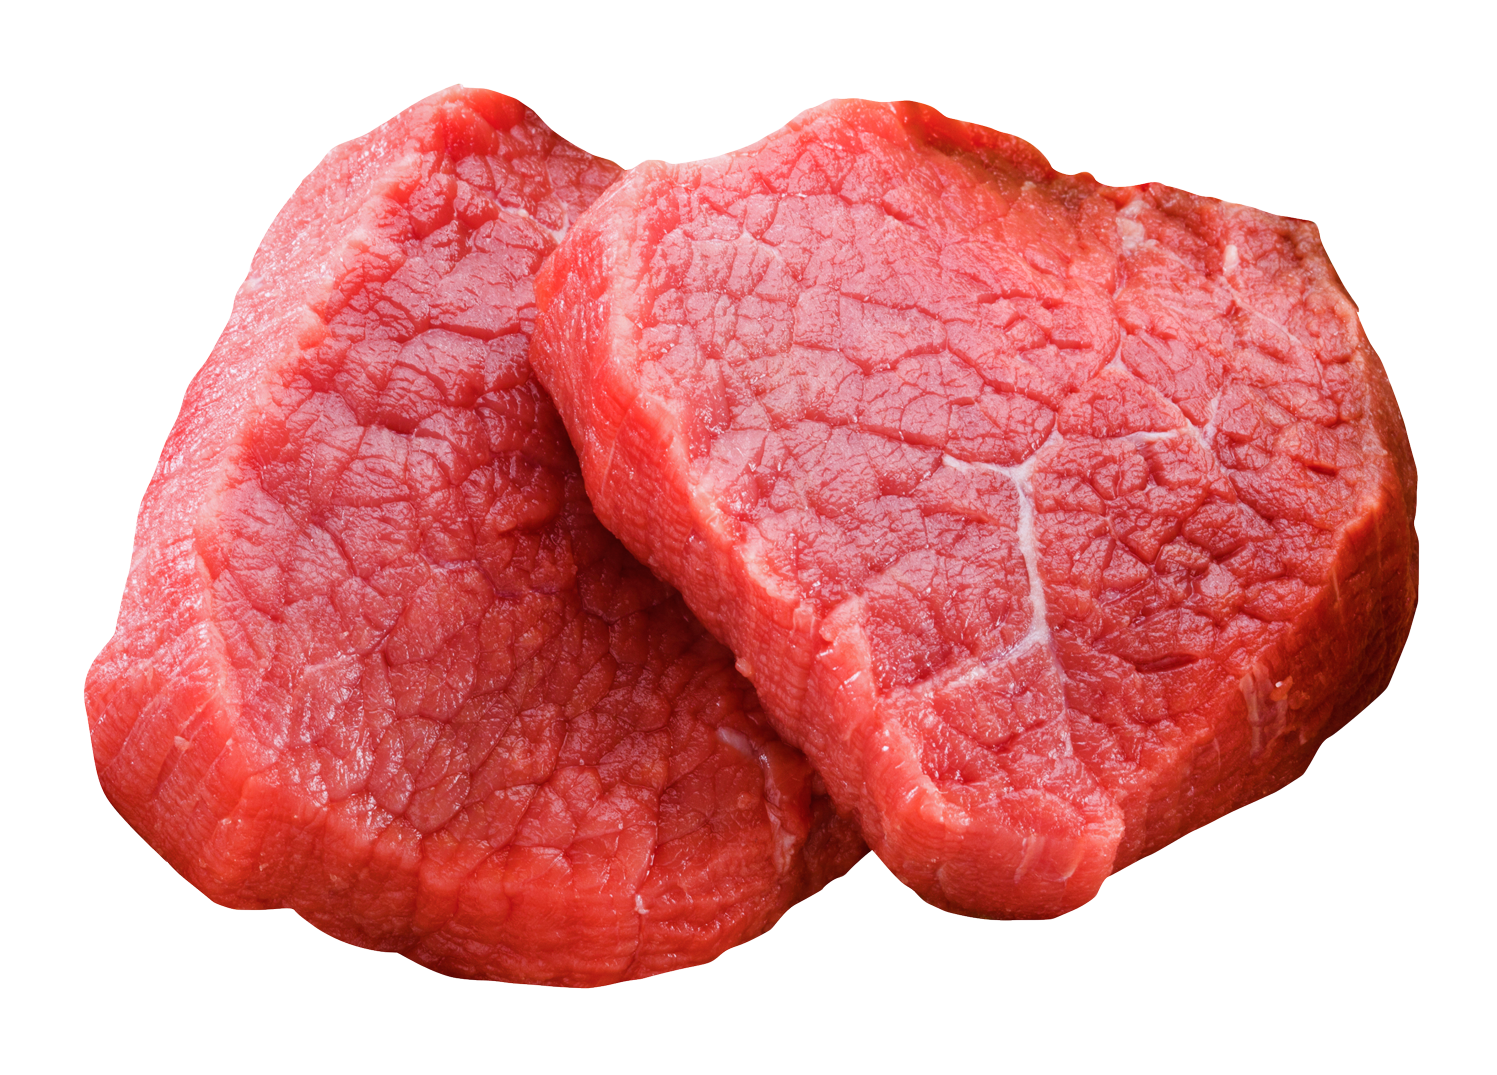 Meat PNG Transparent Image - Meat PNG